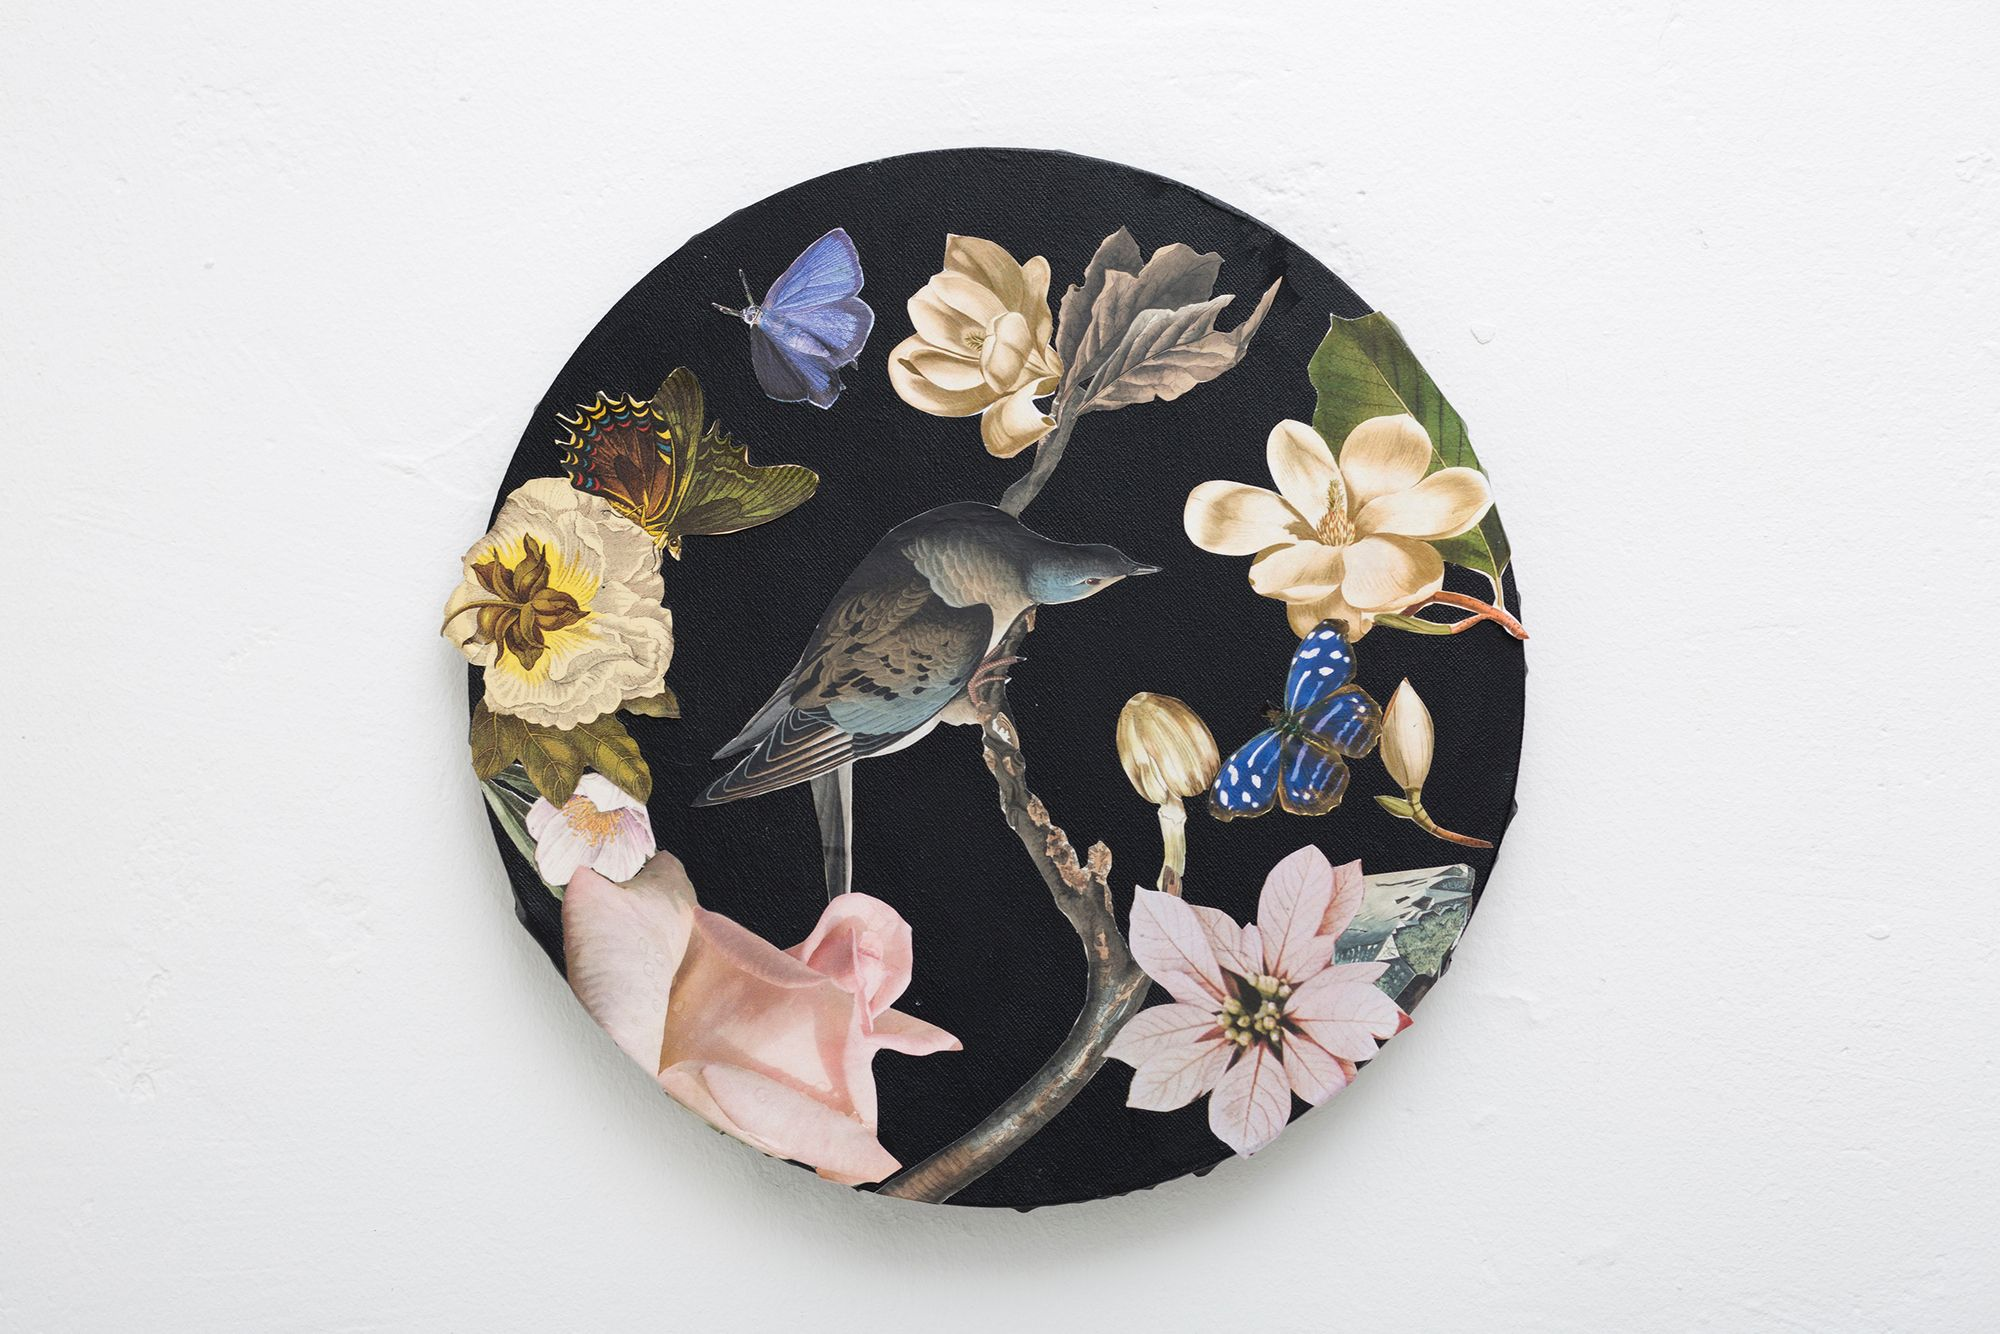 Mixed media collage on canvas by Clare Celeste. A lush round composition of flora and fauna. .  . #cutandpaste #artiststudio #collageart #contemporaryart #collagecollectiveco #collagesociety #welovepaper #lgenpaper #acolorstory #paperartistcollective #artonpaper #artofvisuals #inspiredbypetals #allwhatsbeautiful #allthingsbotanical#createeveryday #artmagazine #contemporaryart #calledtobecreative #natureandart #natureart